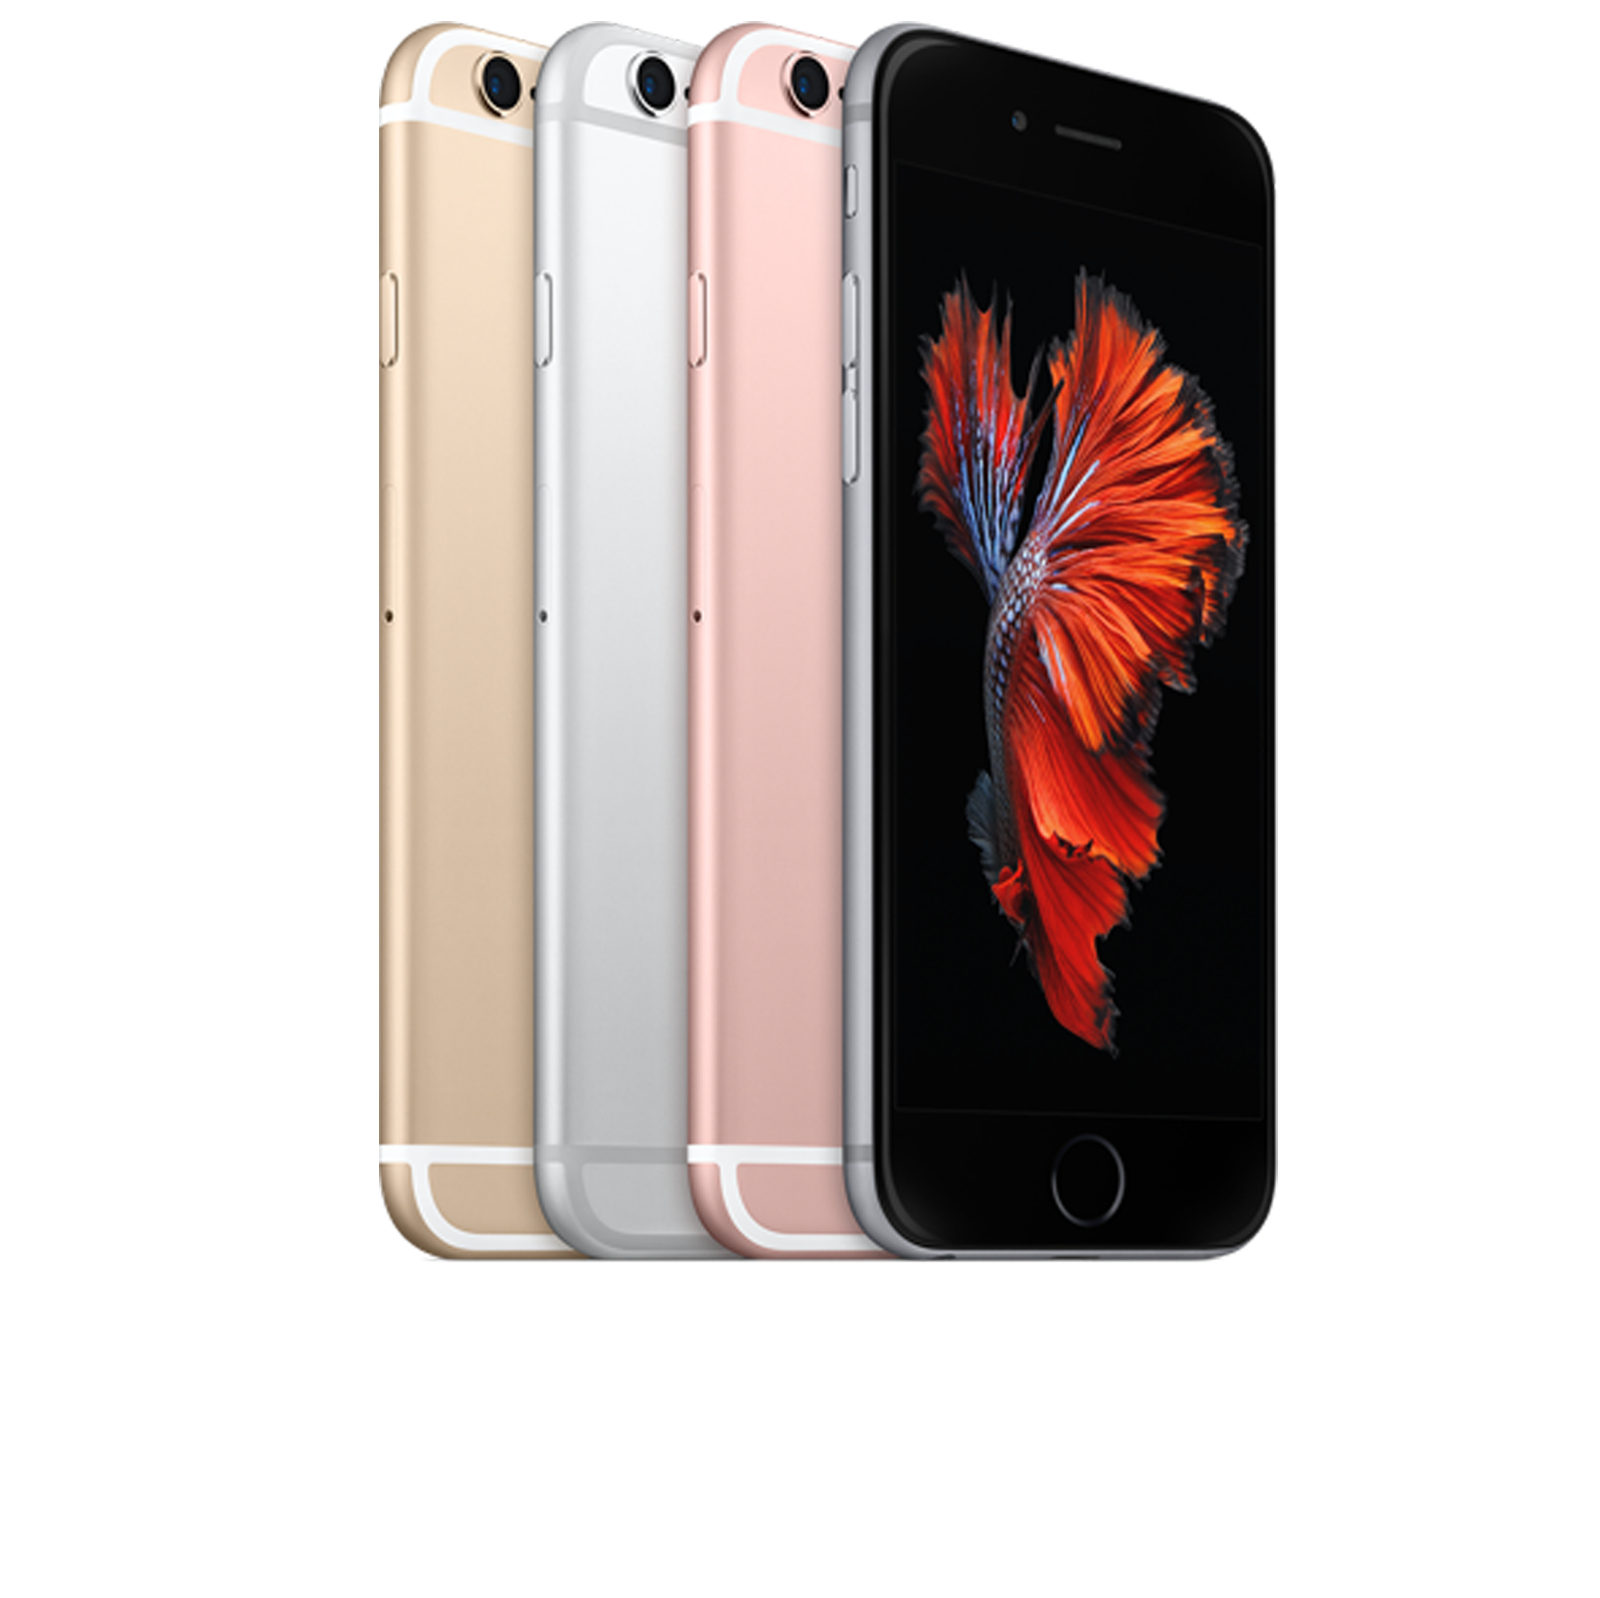 APPLE iPHONE 6S ORIGINAL USED PRODUCT (3 Month Local Warranty).